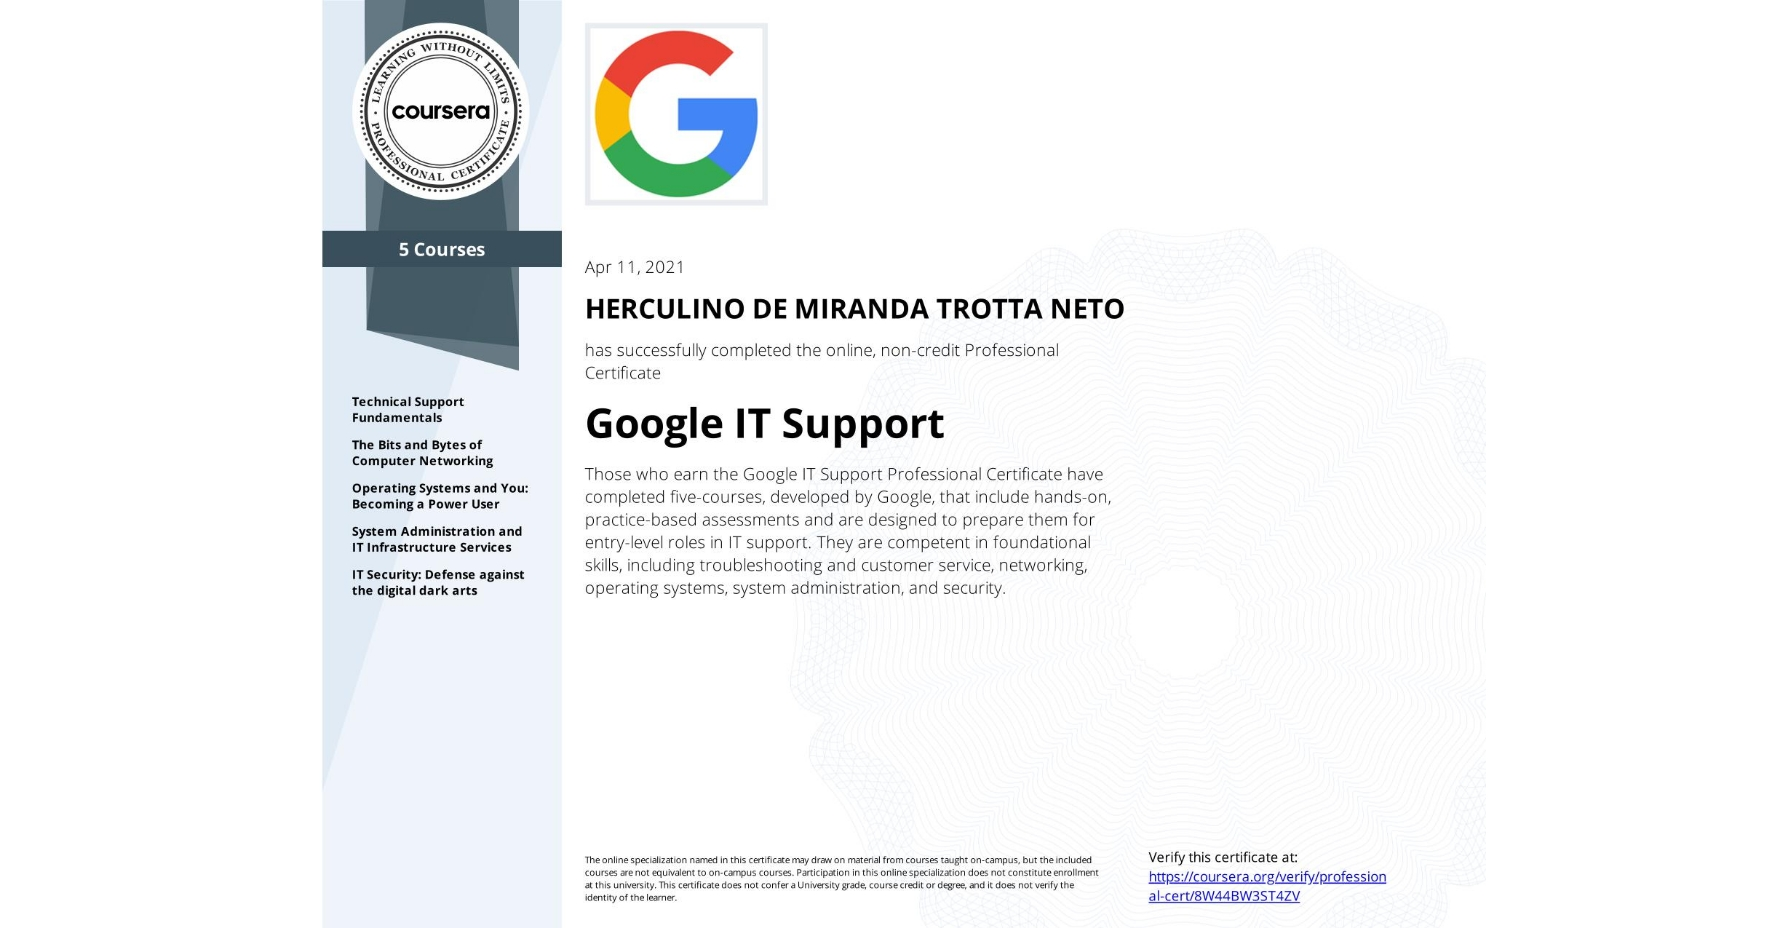 View certificate for  HERCULINO DE MIRANDA TROTTA NETO, Google IT Support, offered through Coursera. Those who earn the Google IT Support Professional Certificate have completed five-courses, developed by Google, that include hands-on, practice-based assessments and are designed to prepare them for entry-level roles in IT support. They are competent in foundational skills, including troubleshooting and customer service, networking, operating systems, system administration, and security.